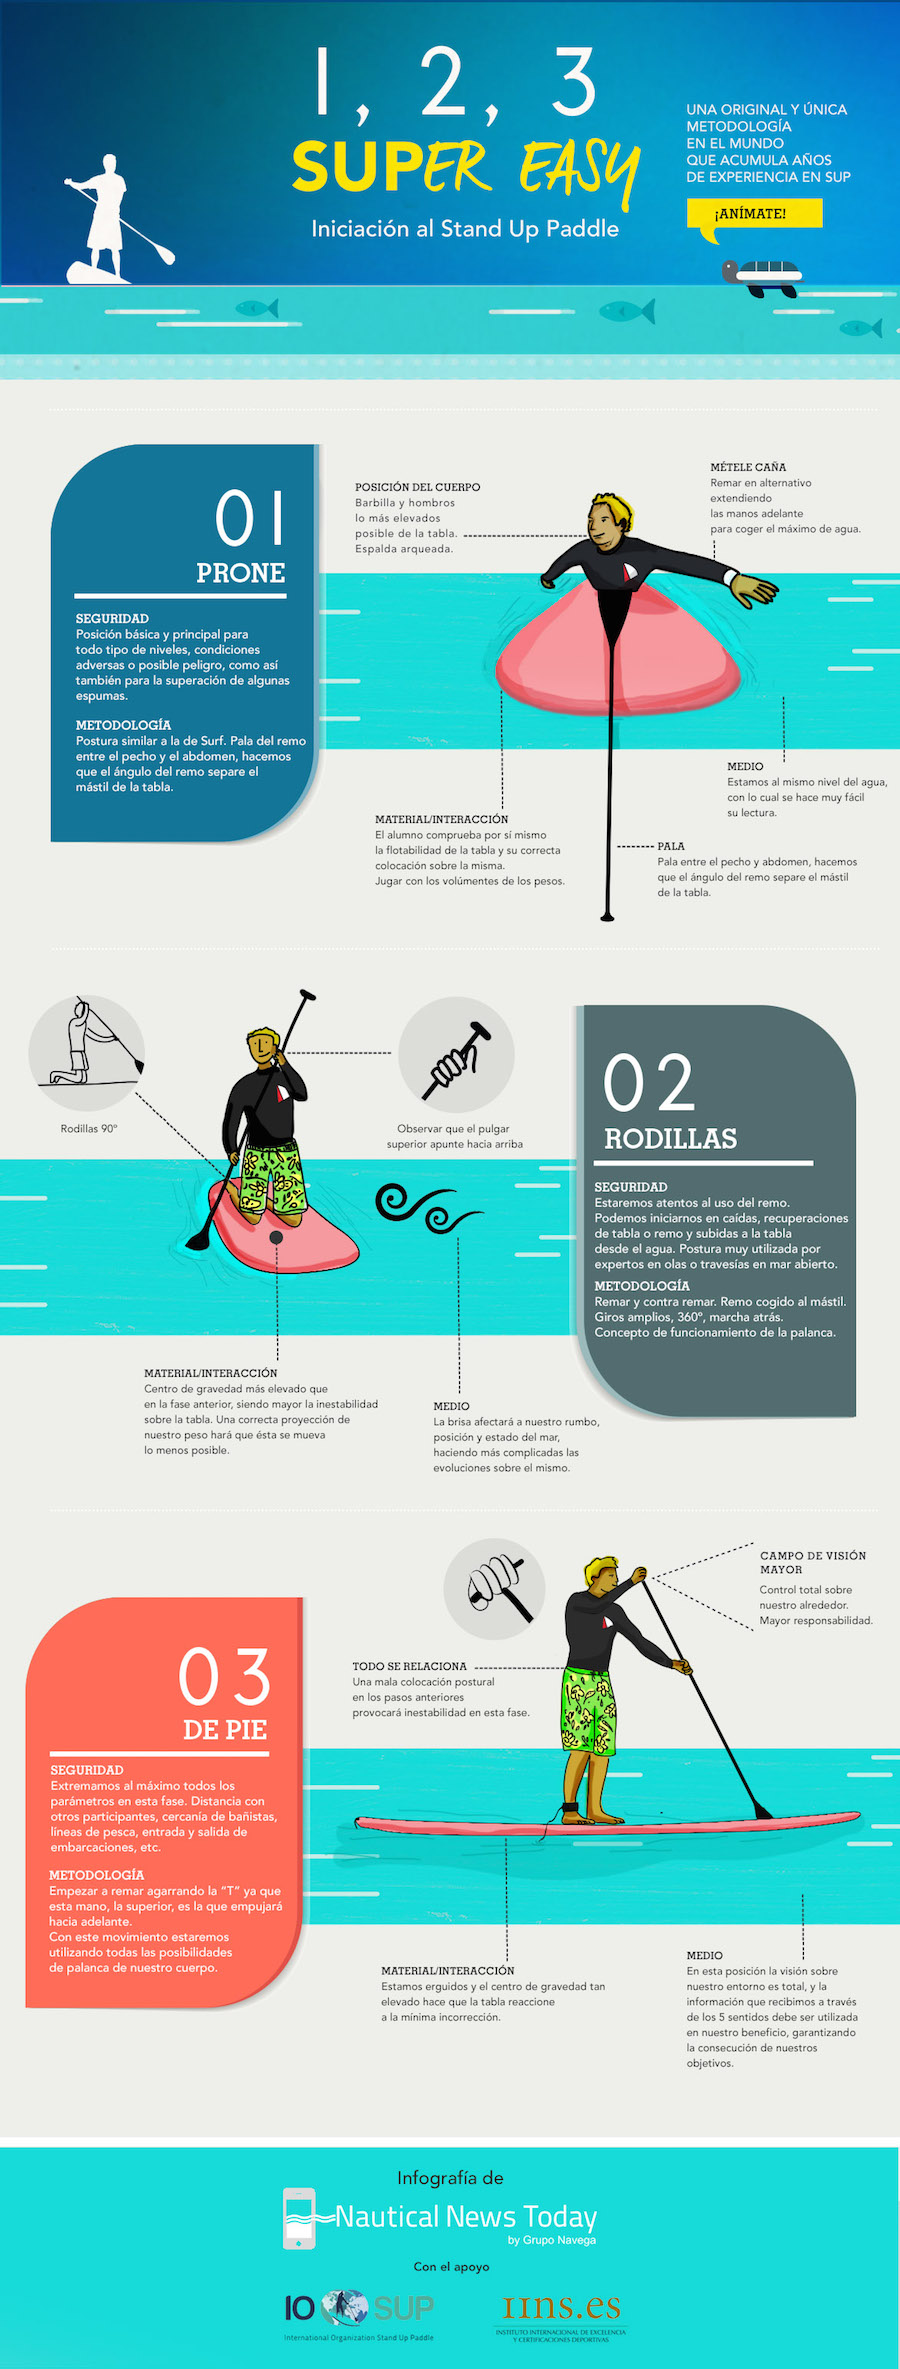 Infografia Iniciación al Stand Up Paddle 900